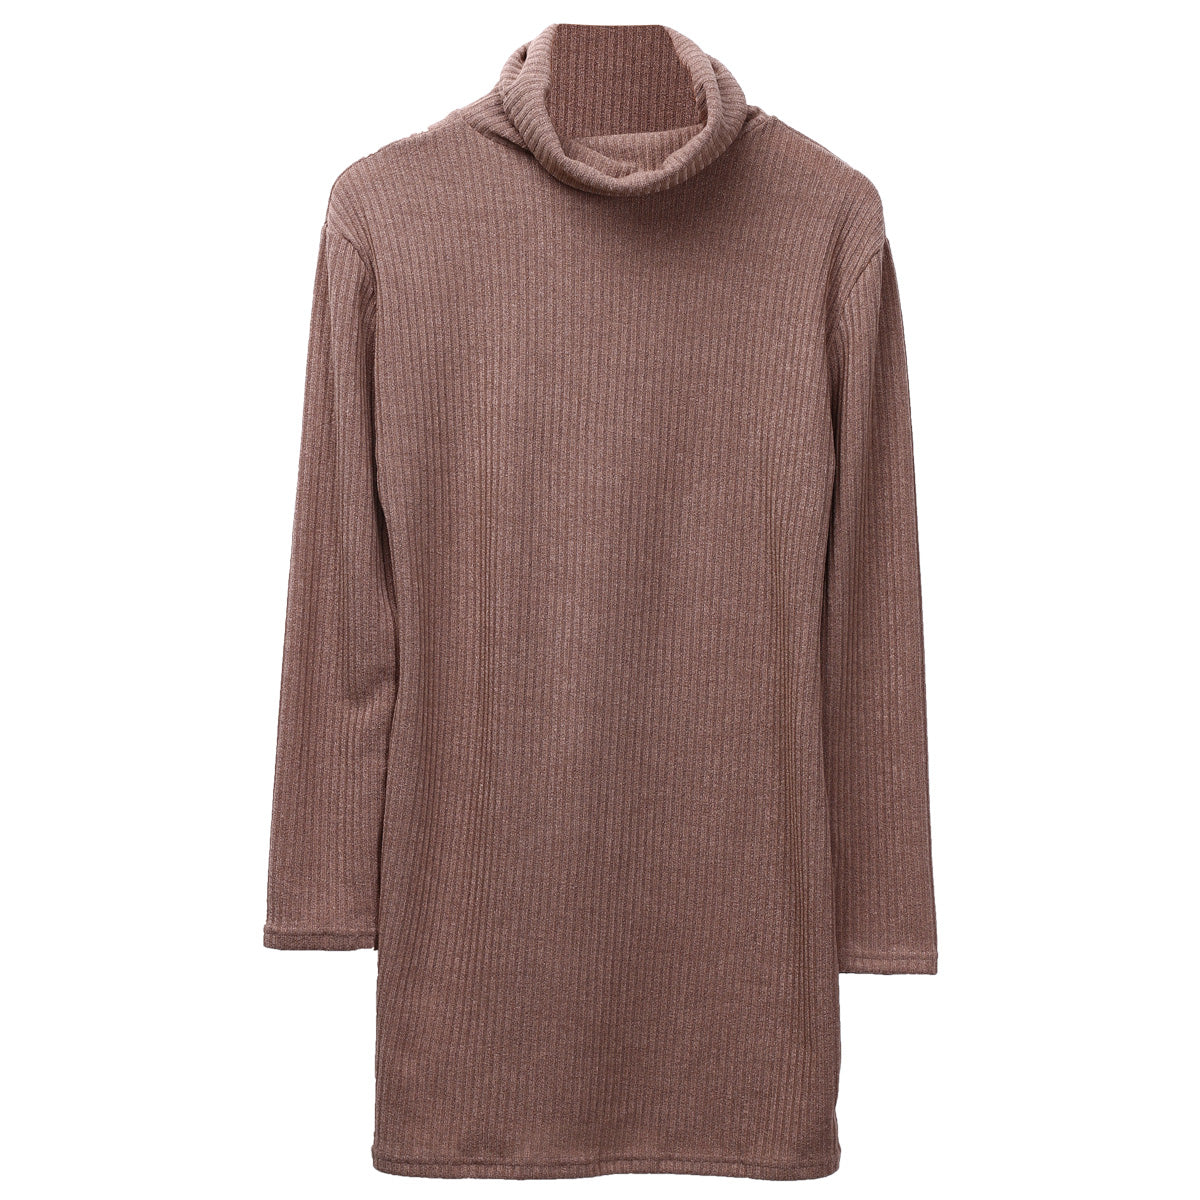 Winter Long Sweater Dress Women Turtleneck Sweaters Pullover Women Famale Knitted Sweater Pullover Women Turtleneck